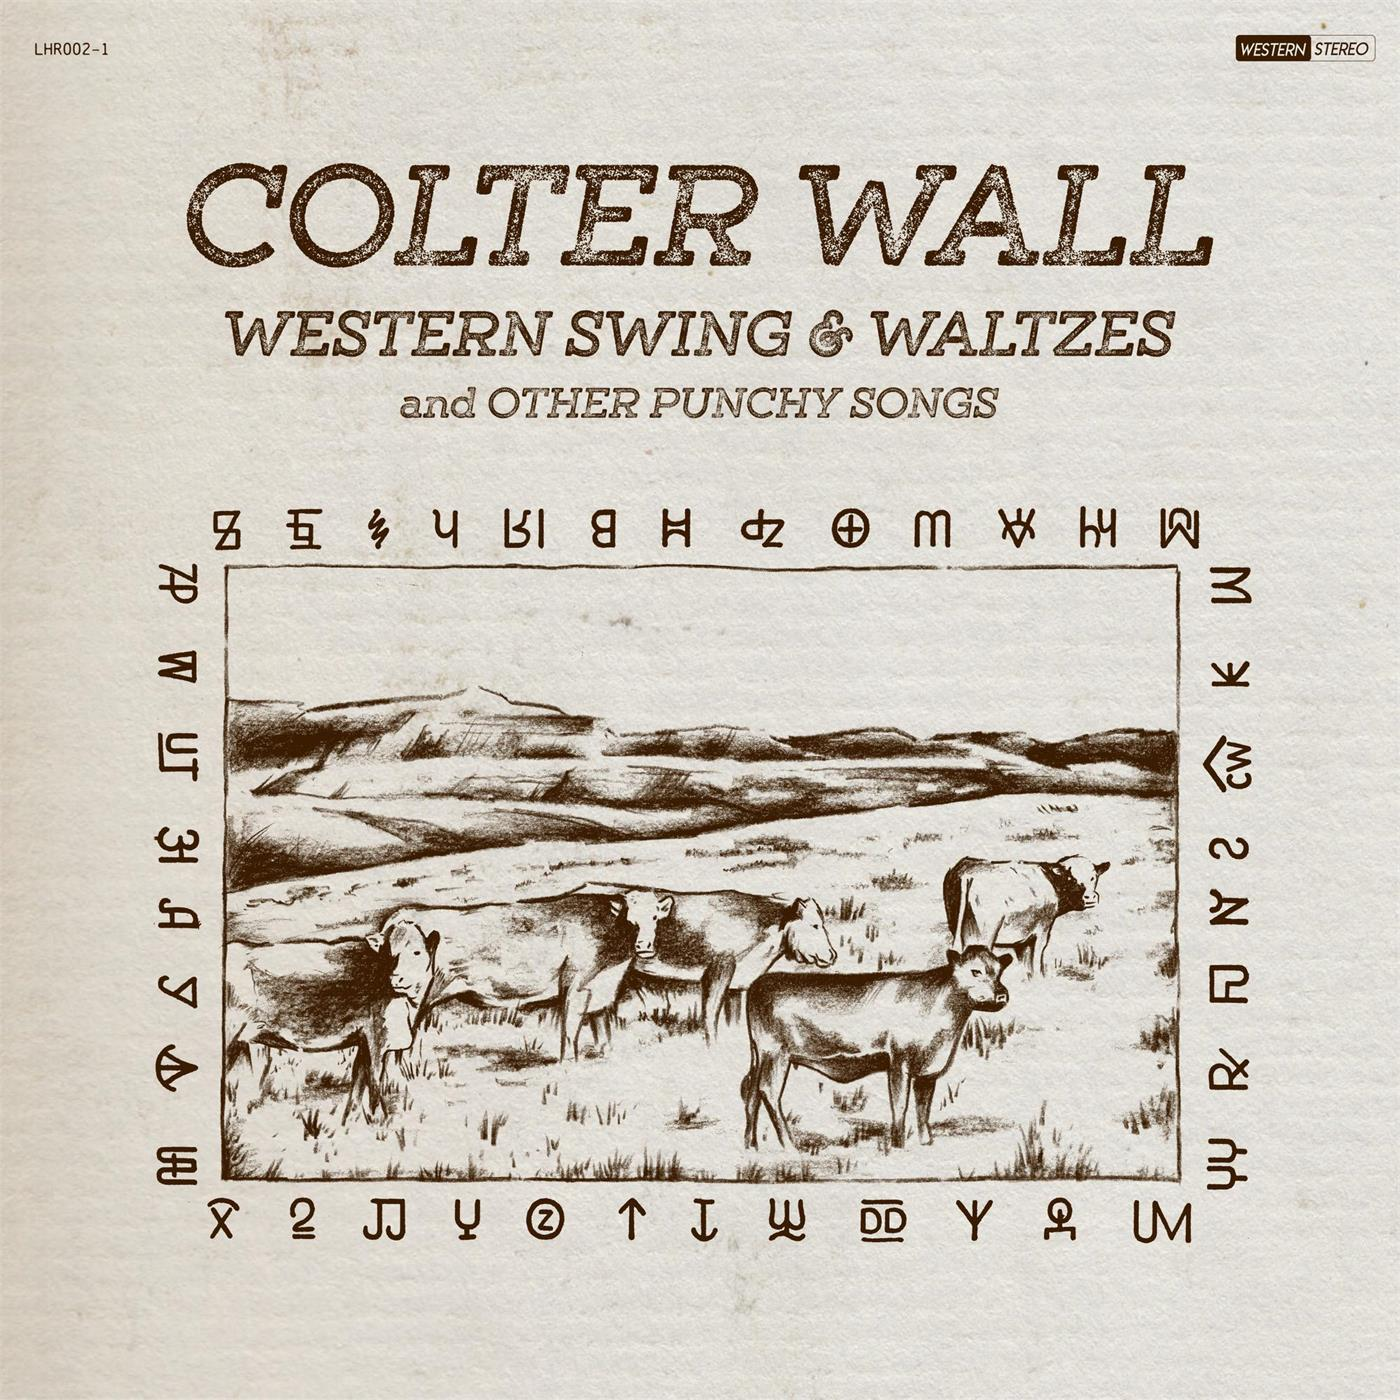 Colter Wall - Western Swing & Waltzes And Other Punchy [LP]